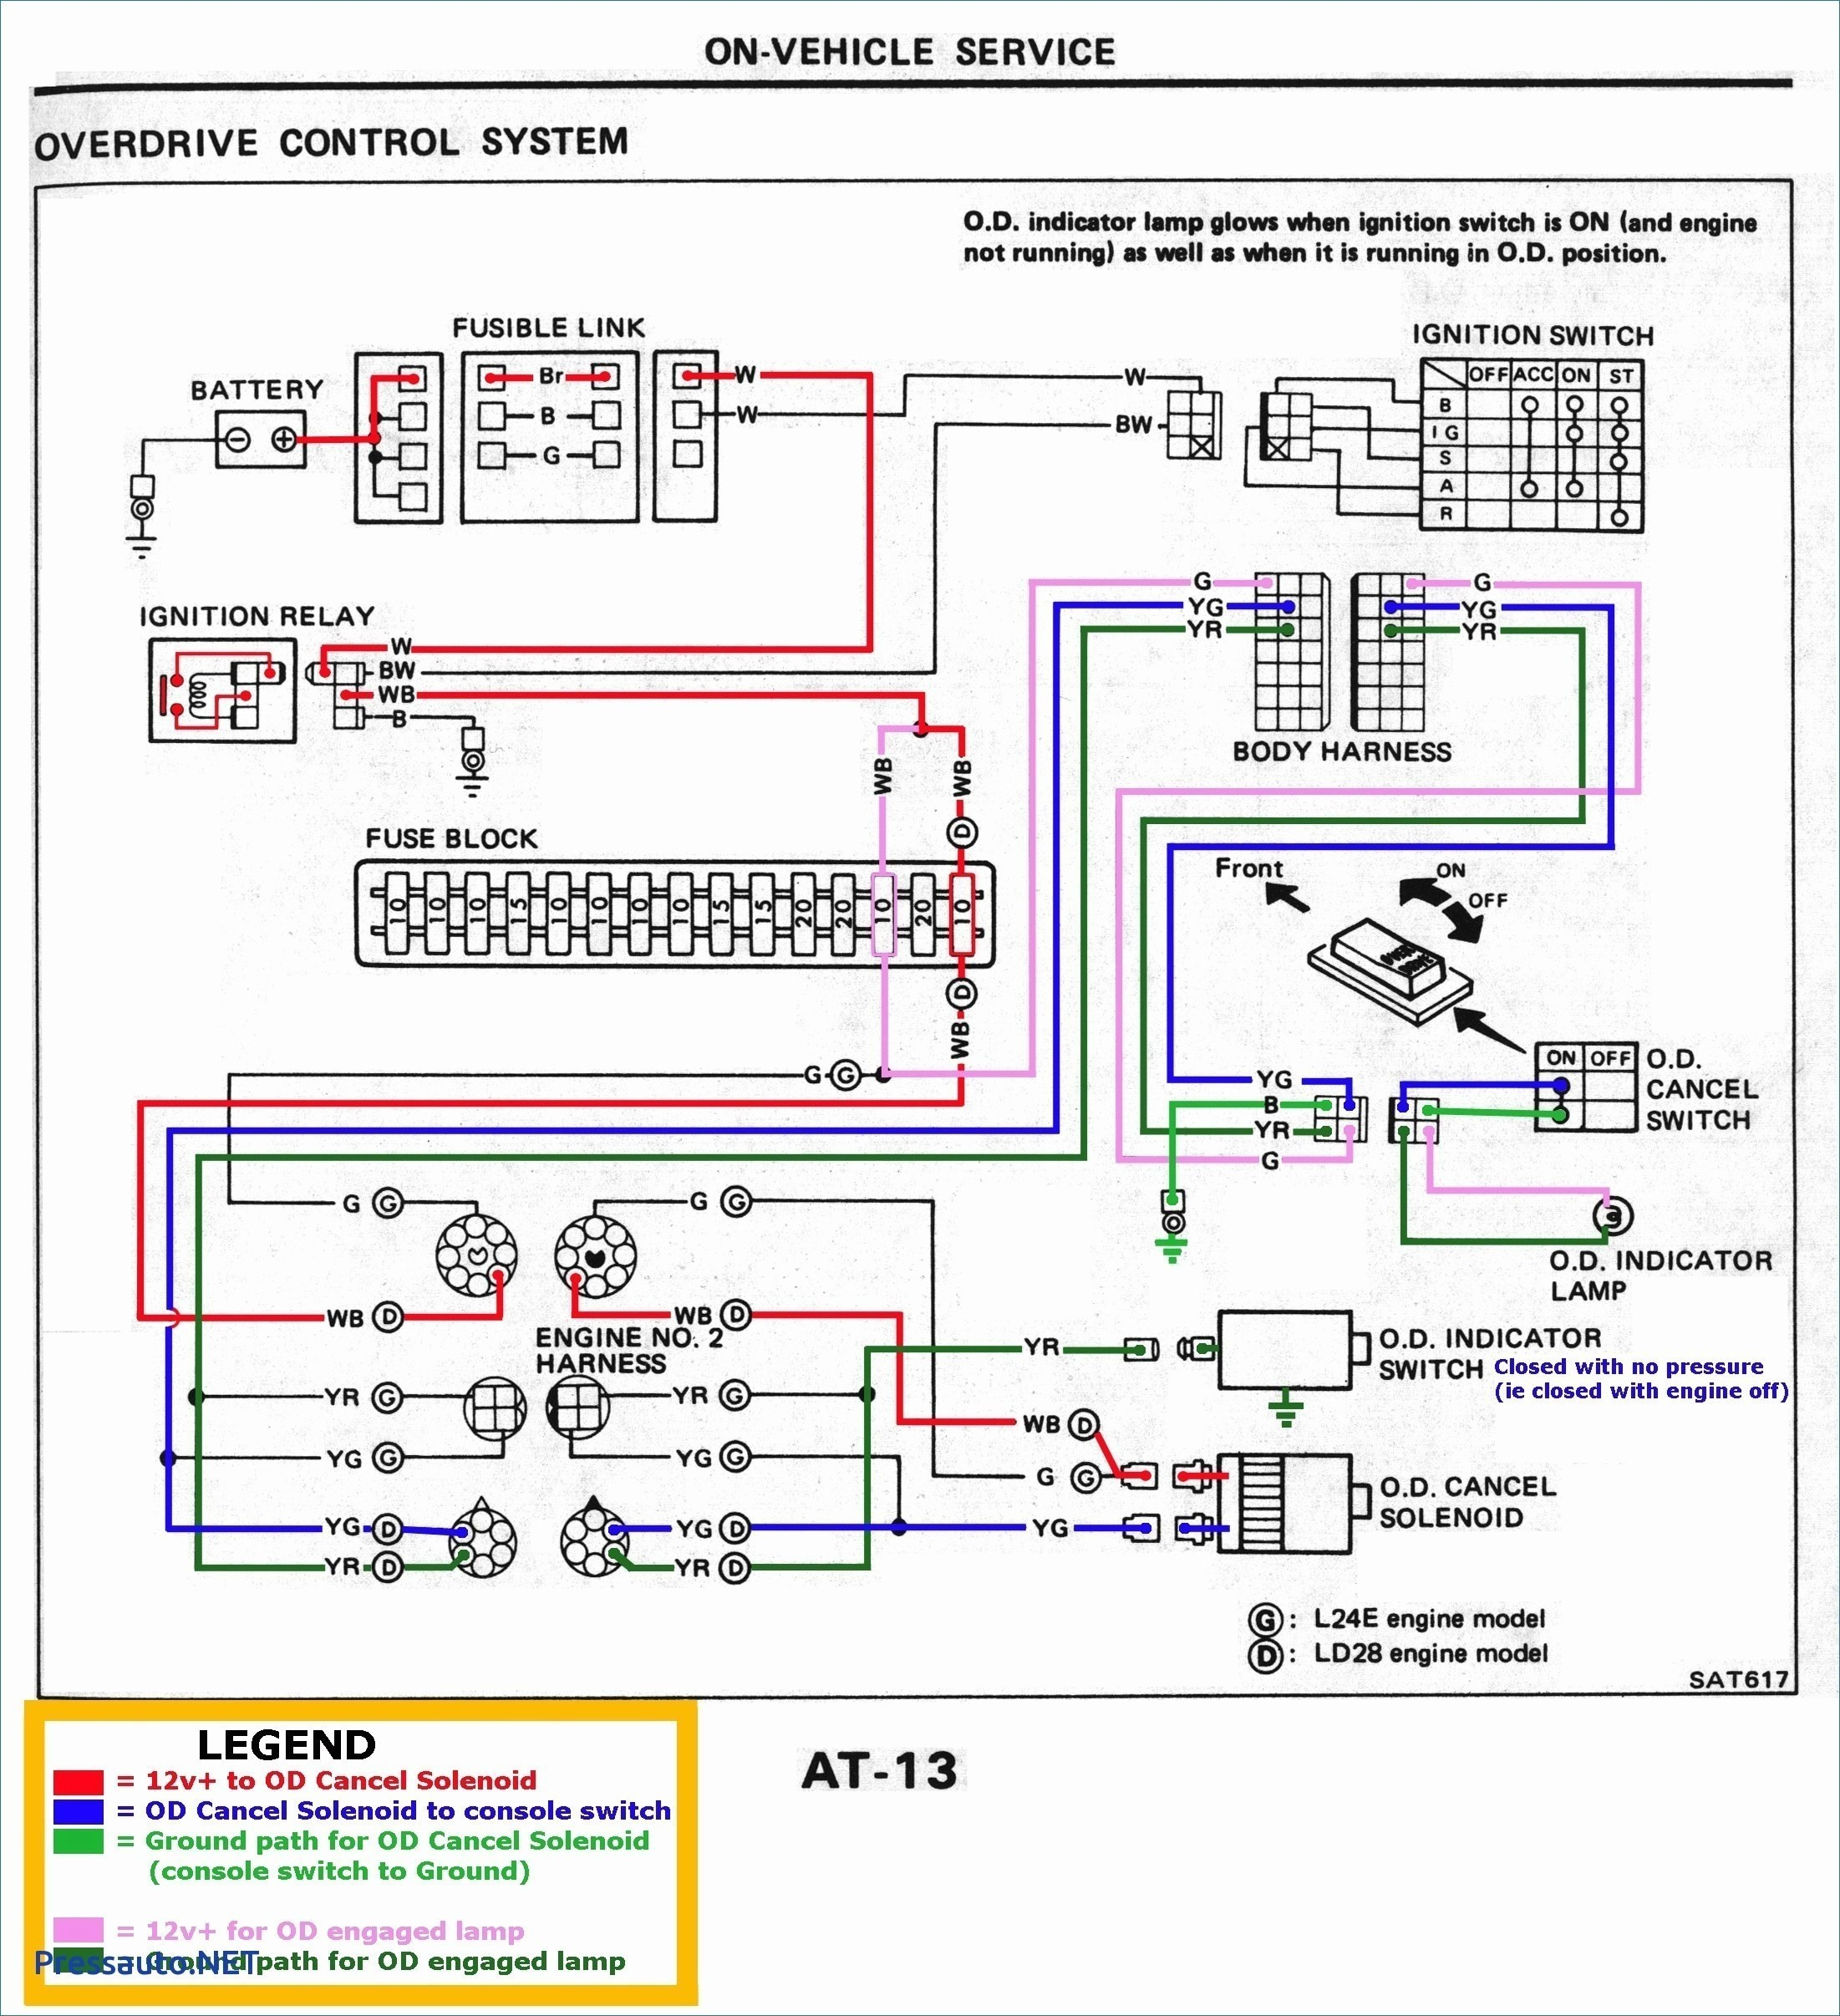 Coil Ignition System Diagram E36 Ignition Switch Wiring Diagram Best Wiring Diagram for Ignition Of Coil Ignition System Diagram Wiring Diagram the Ignition System Refrence Basic Ignition System